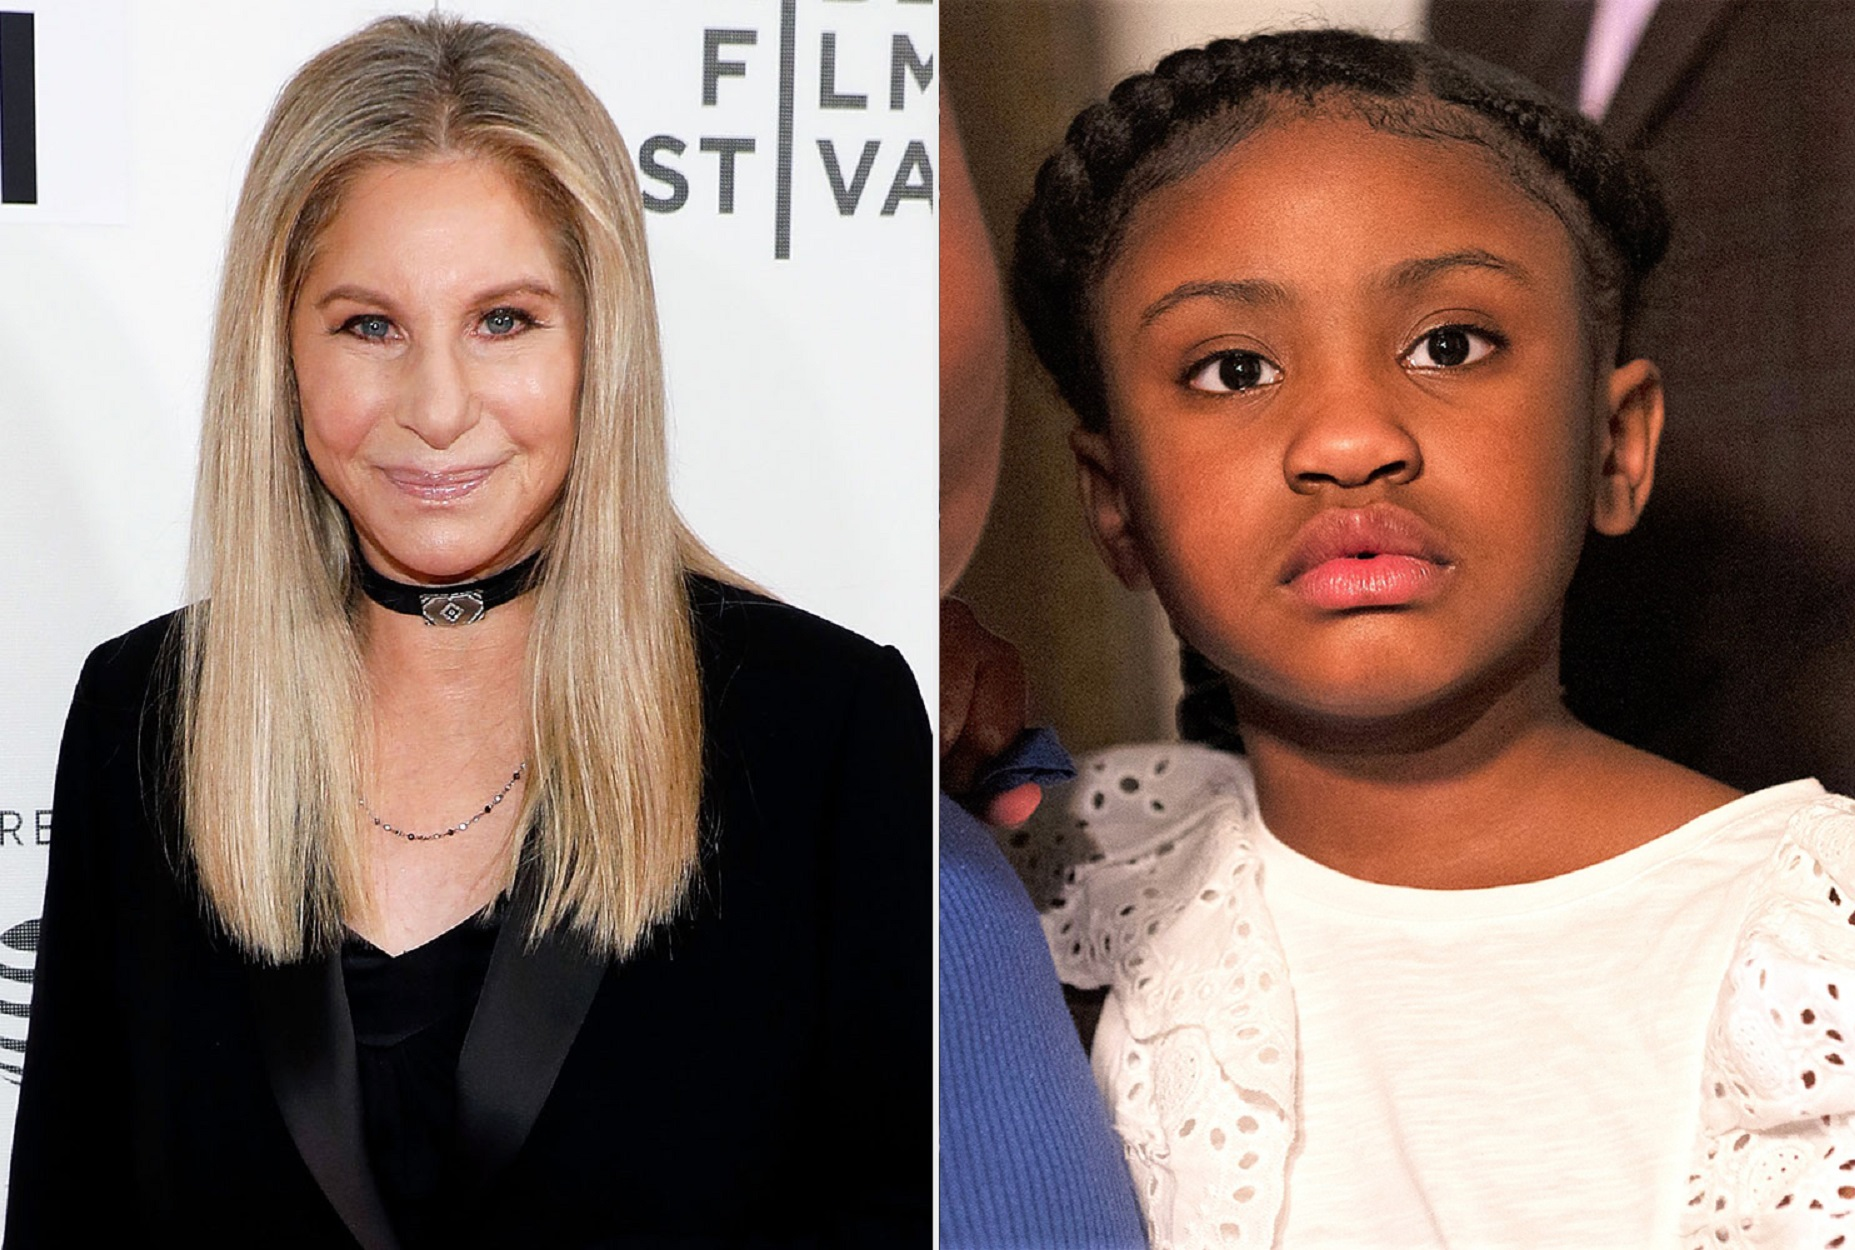 side by side barbra streisand and gianna floyd